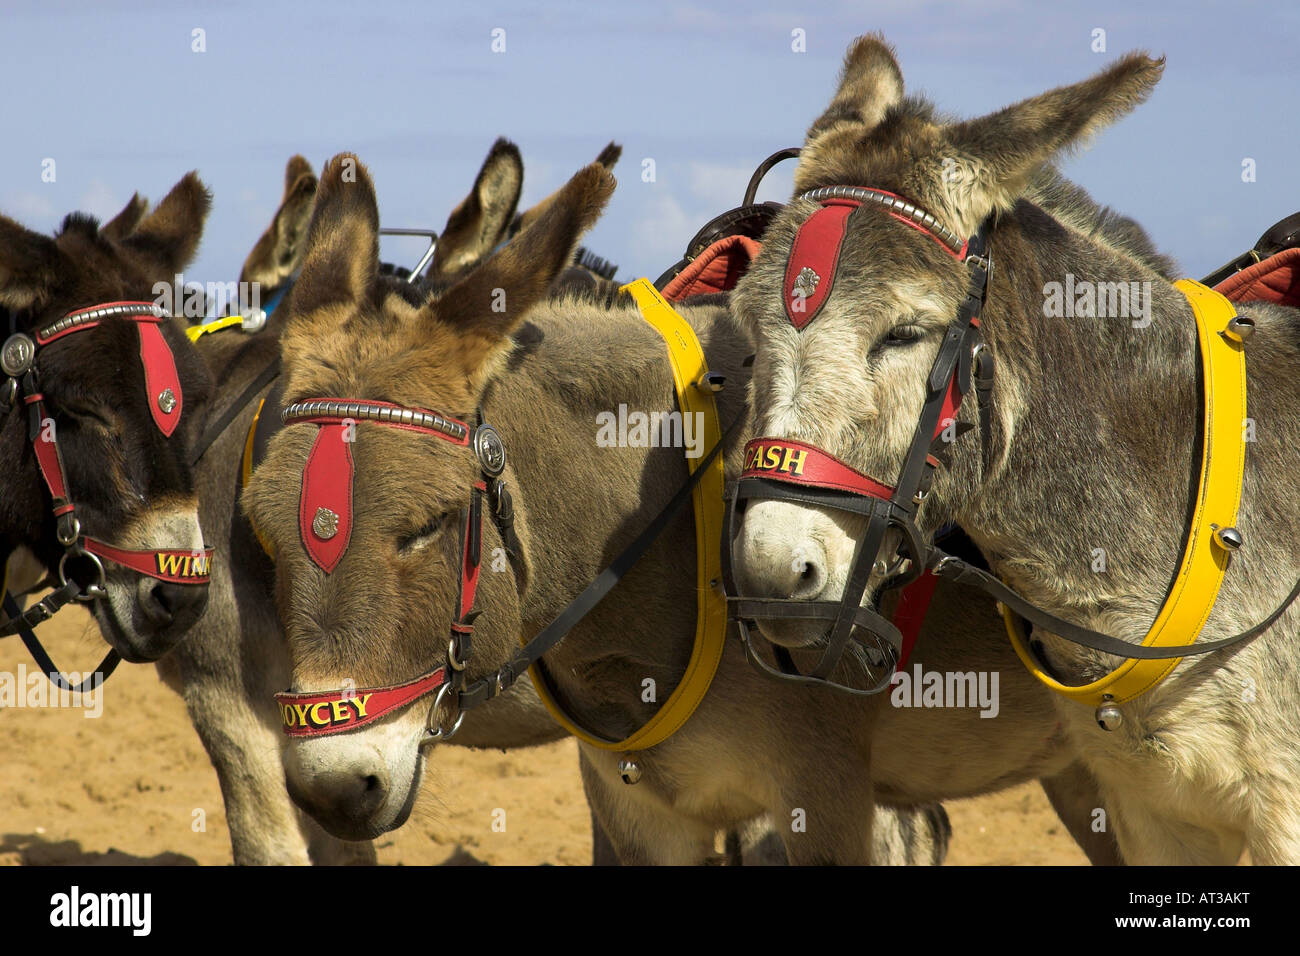 Donkeys on the beach at Skegness, Lincolnshire, England, U.K. Stock Photo